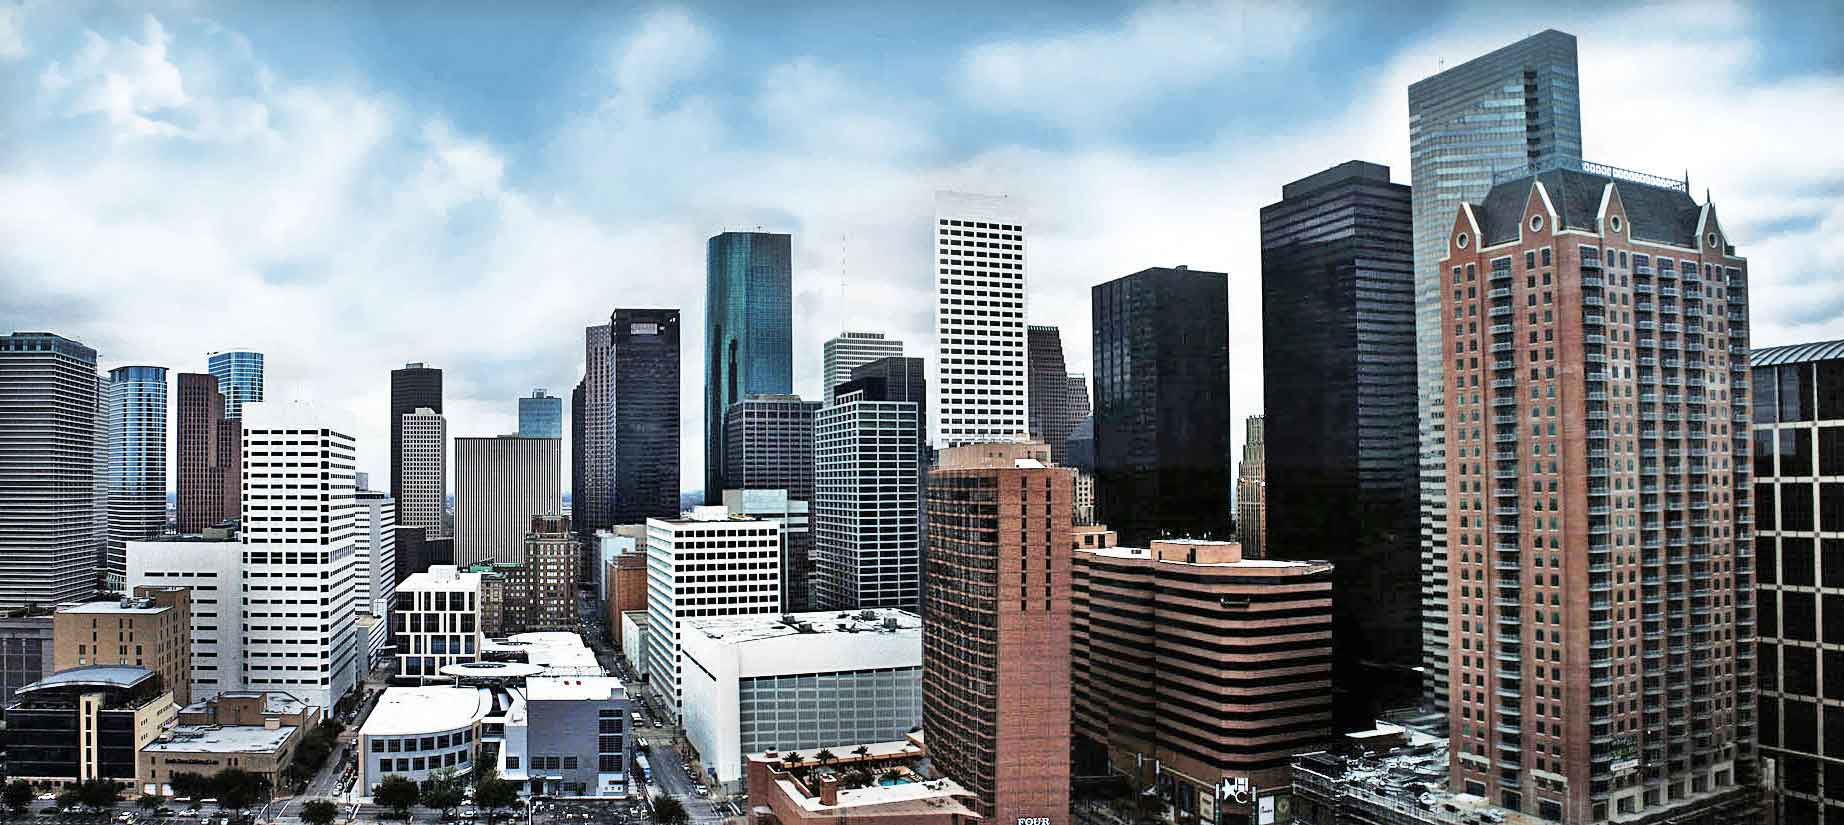 Houston Downtown Image